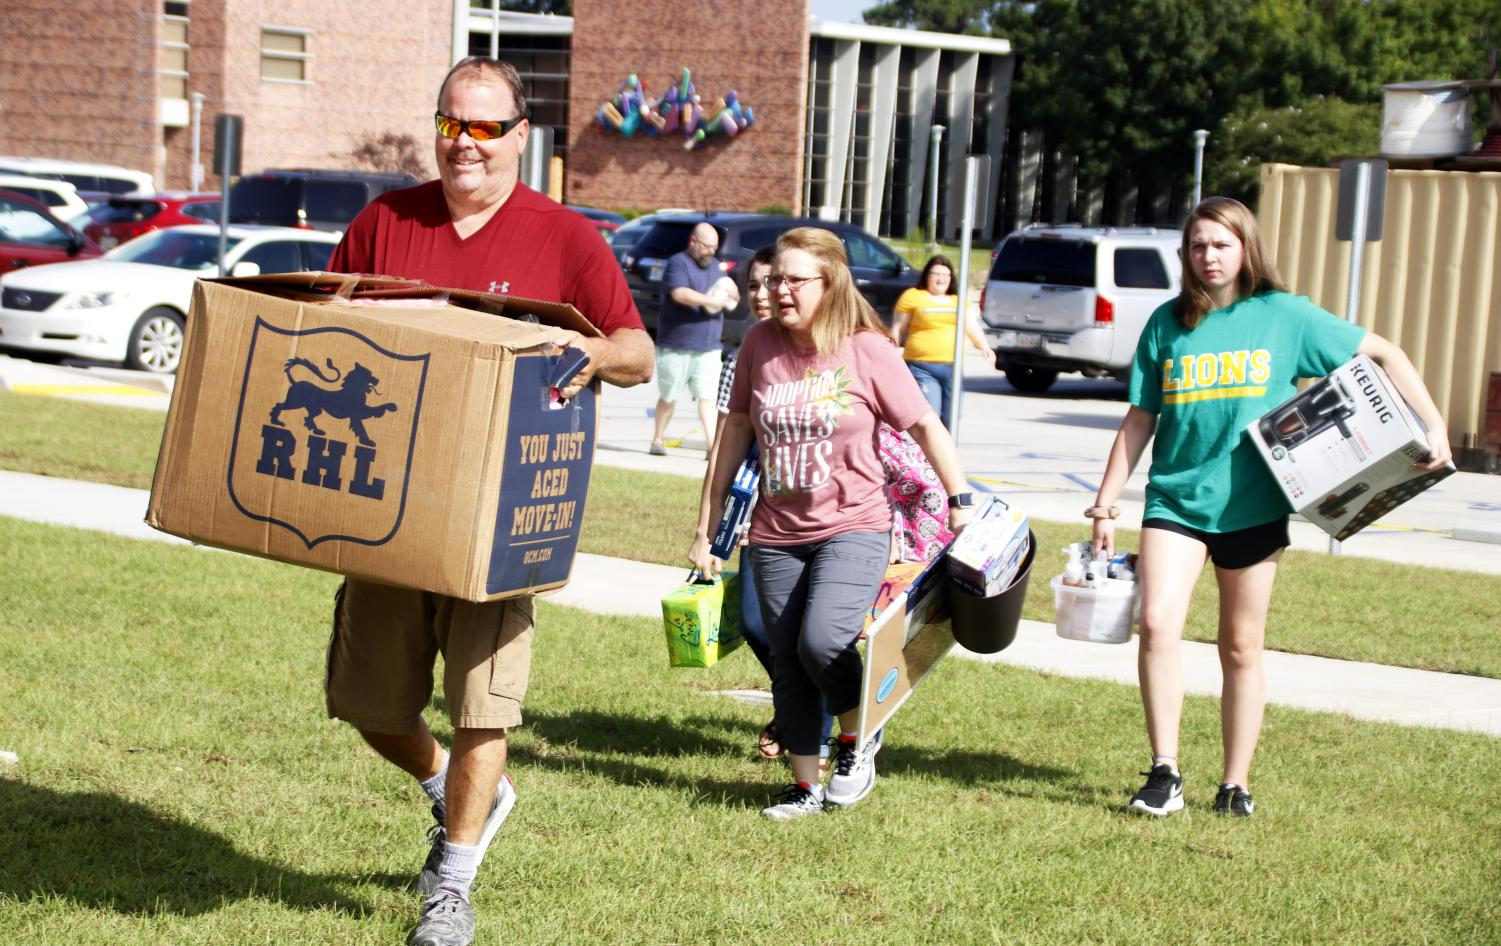 Students and their family carry boxes into the dorms during Move in Mania. Knowing what you do and do not need for college is crucial before going off to live on your own.